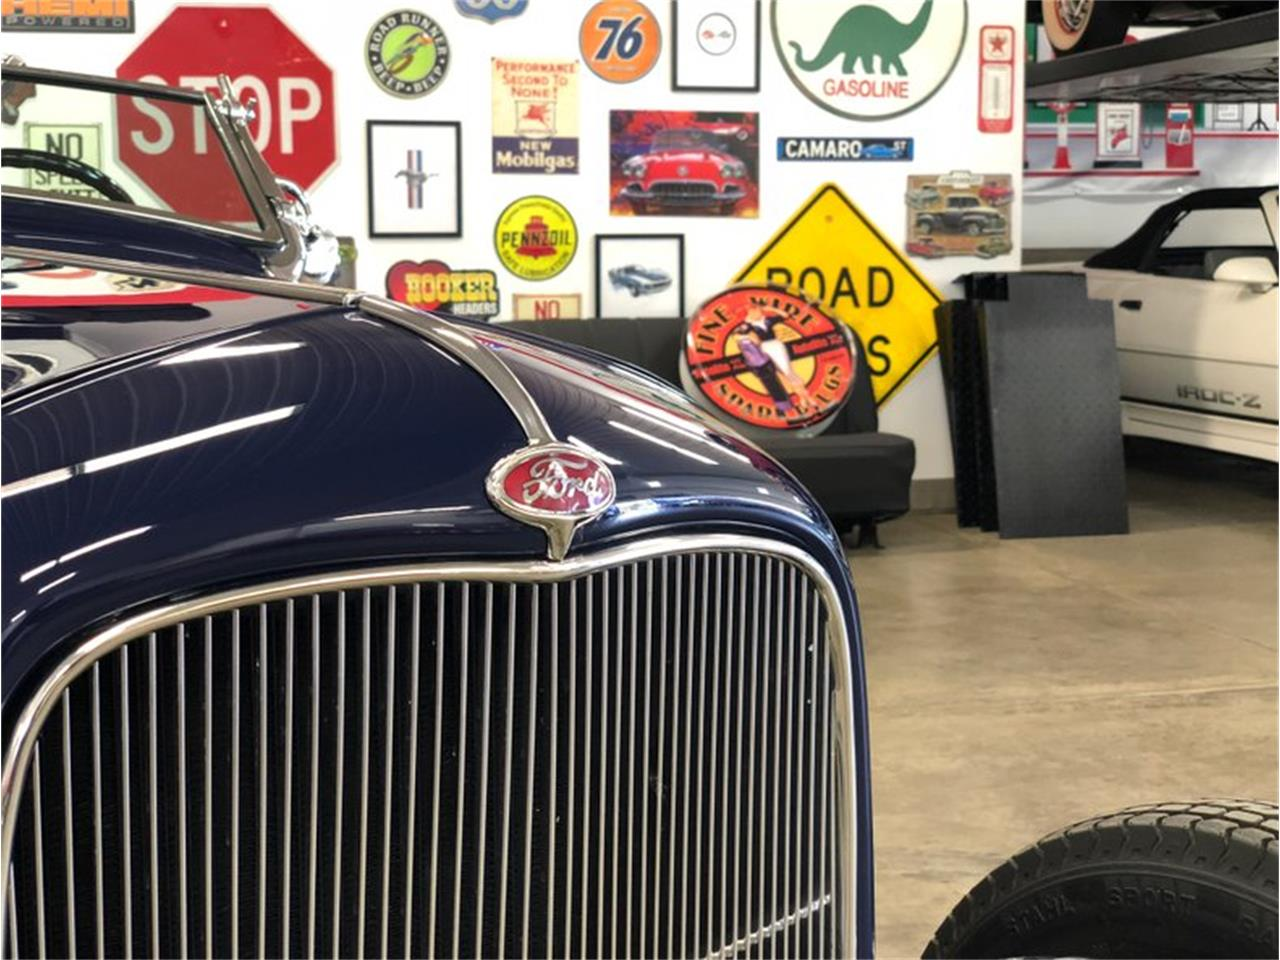 1932 Ford Roadster for sale in Grand Rapids, MI – photo 33